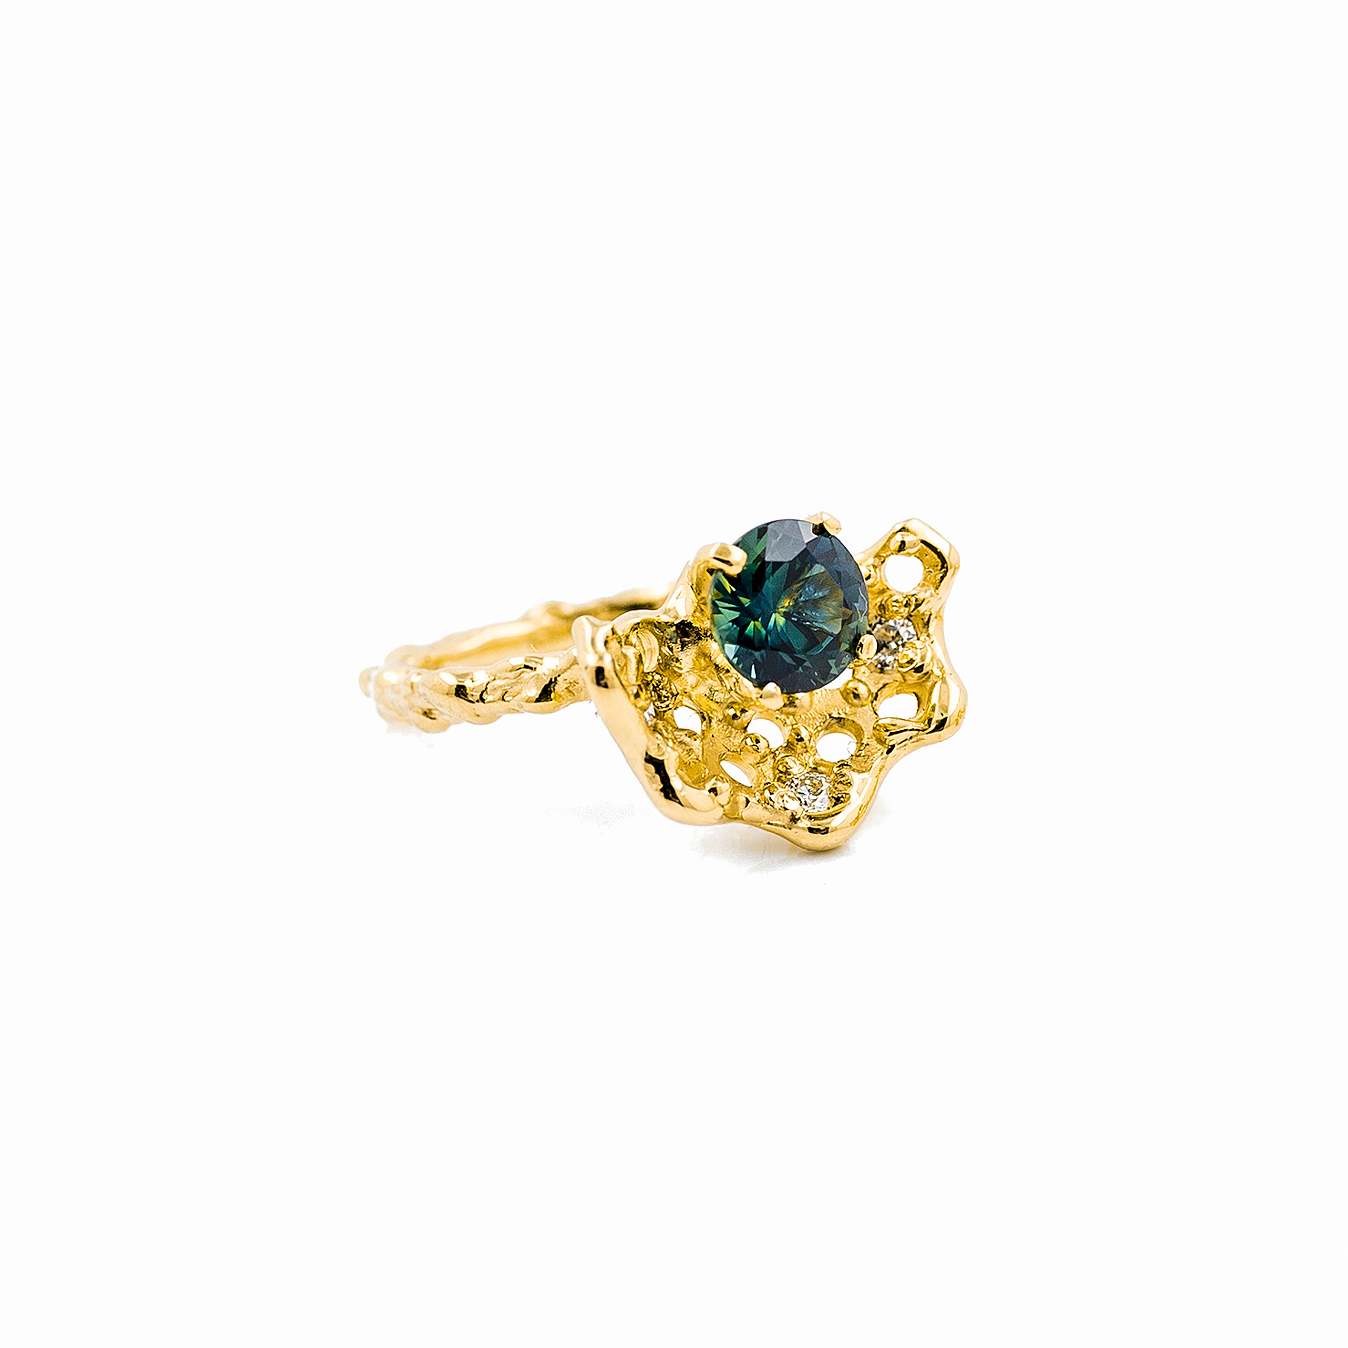 Beneath The Surface Engagement and Wedding Ring | 18ct yellow gold, Australian sapphire, white diamonds.